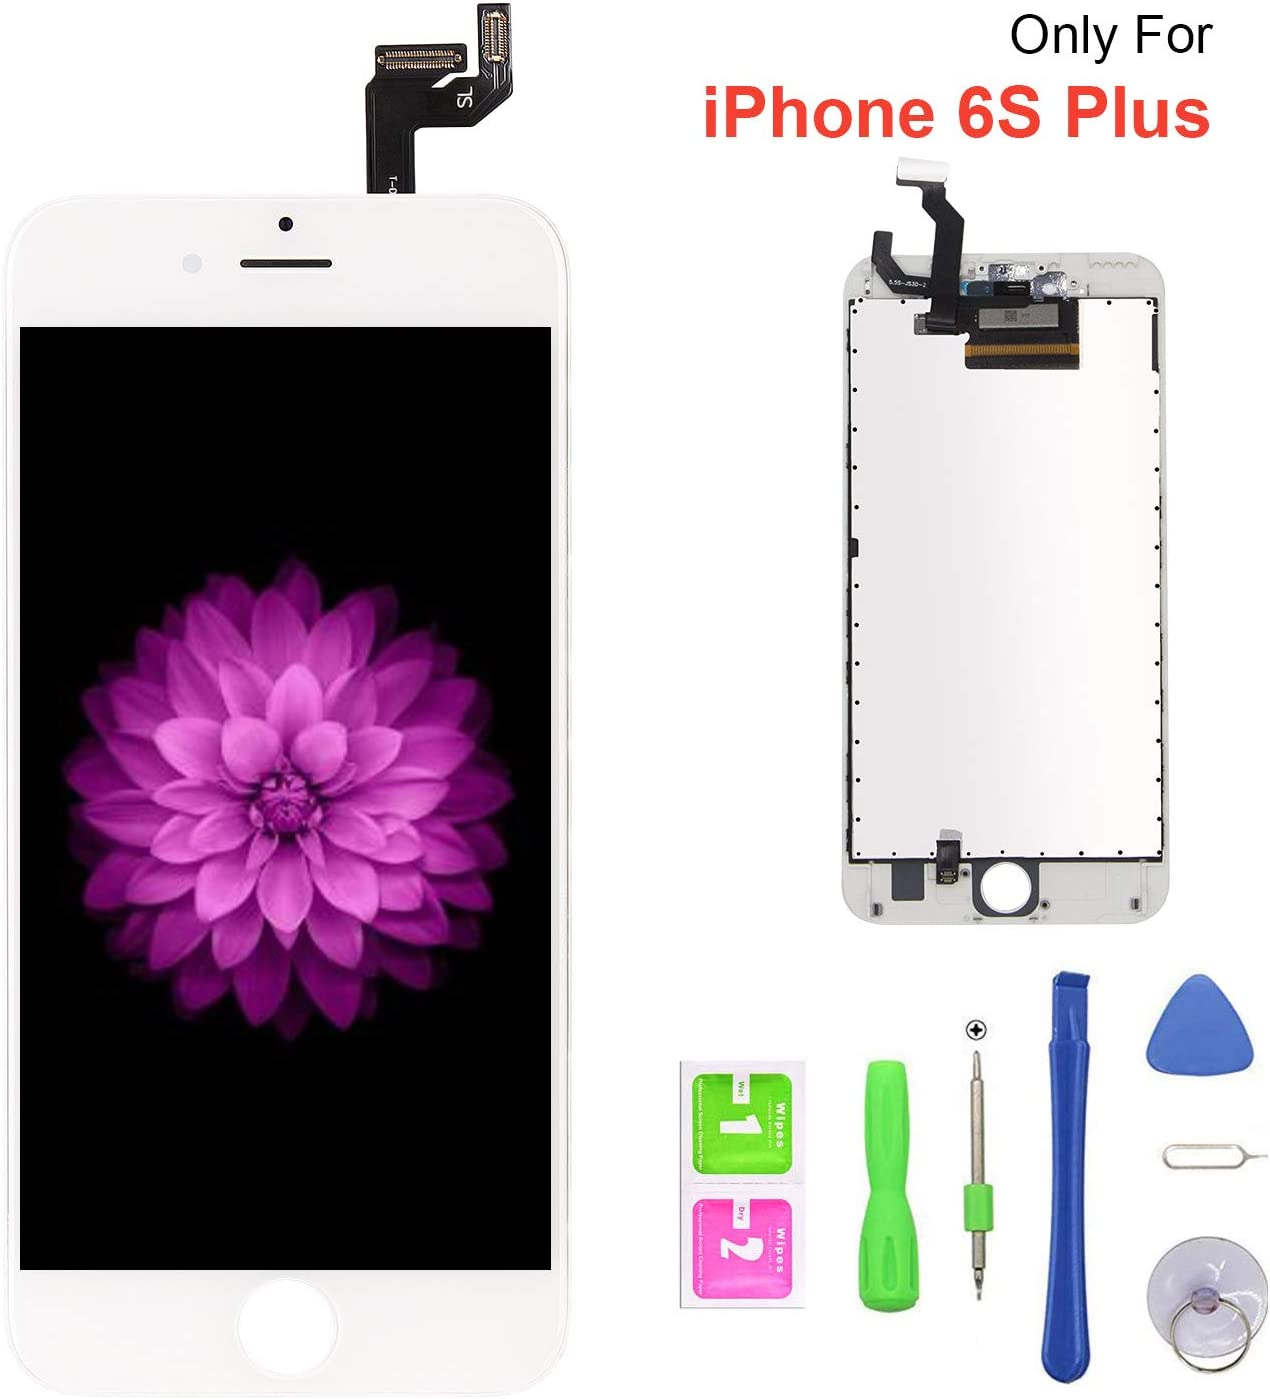 FFtopu Compatible with iPhone 6s Plus Screen Replacement White, FFtopu LCD Display 3D Touch Screen Digitizer Replacement Frame Cell Assembly Set with Free Repair Tools(5.5